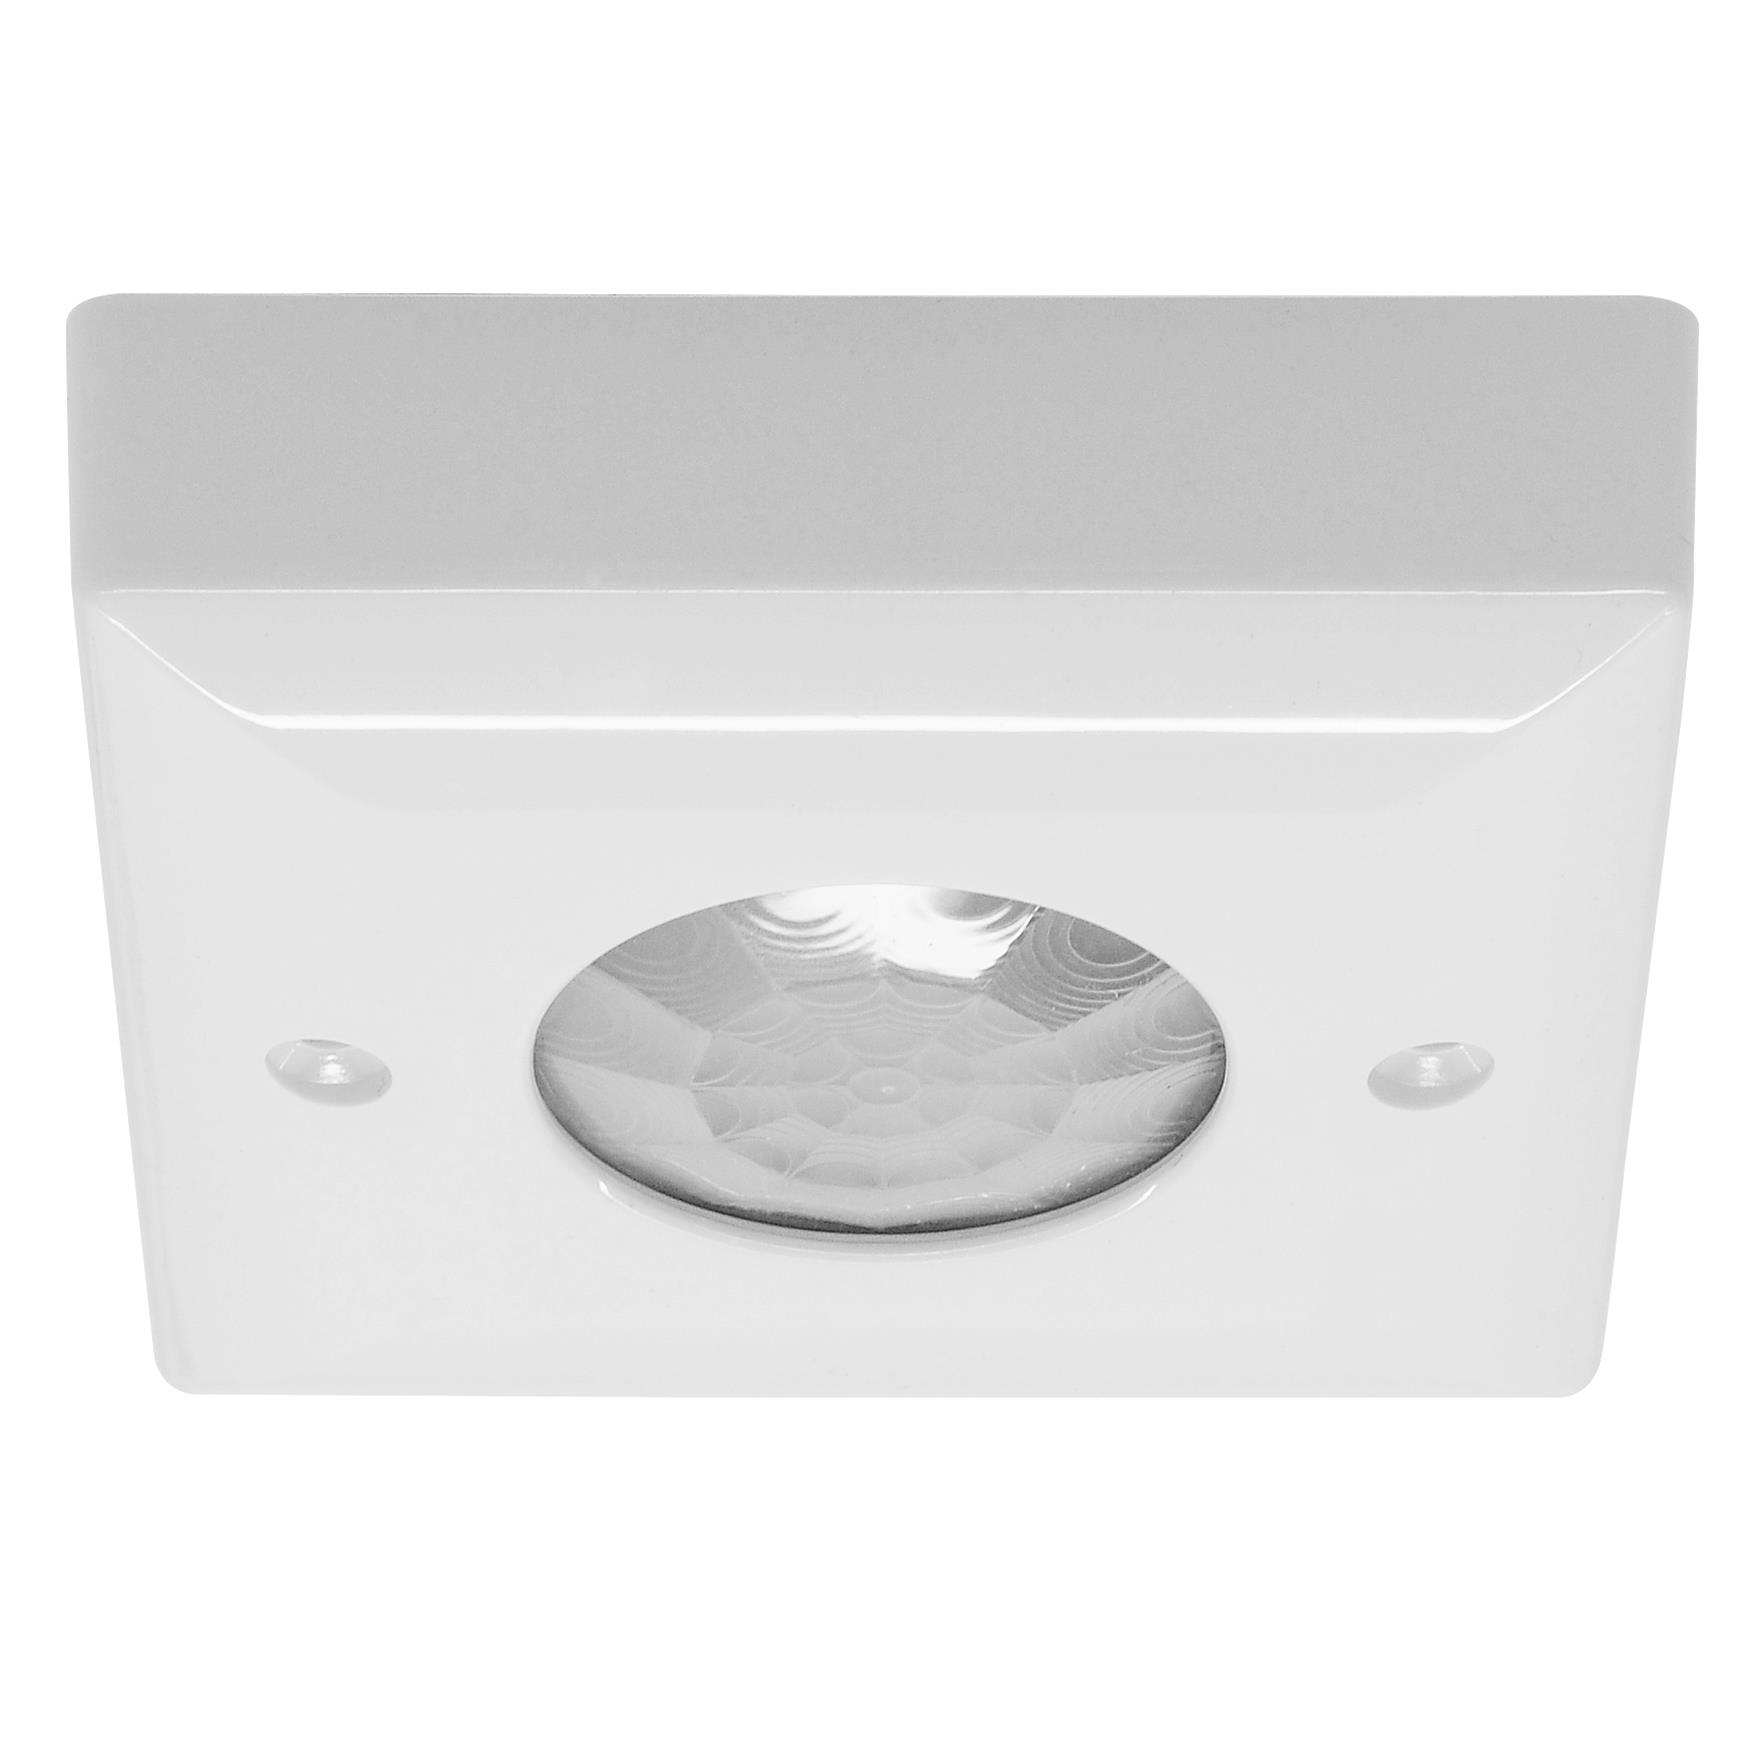 Ceiling Surface Mounted Pir Switch White Plastic Mr